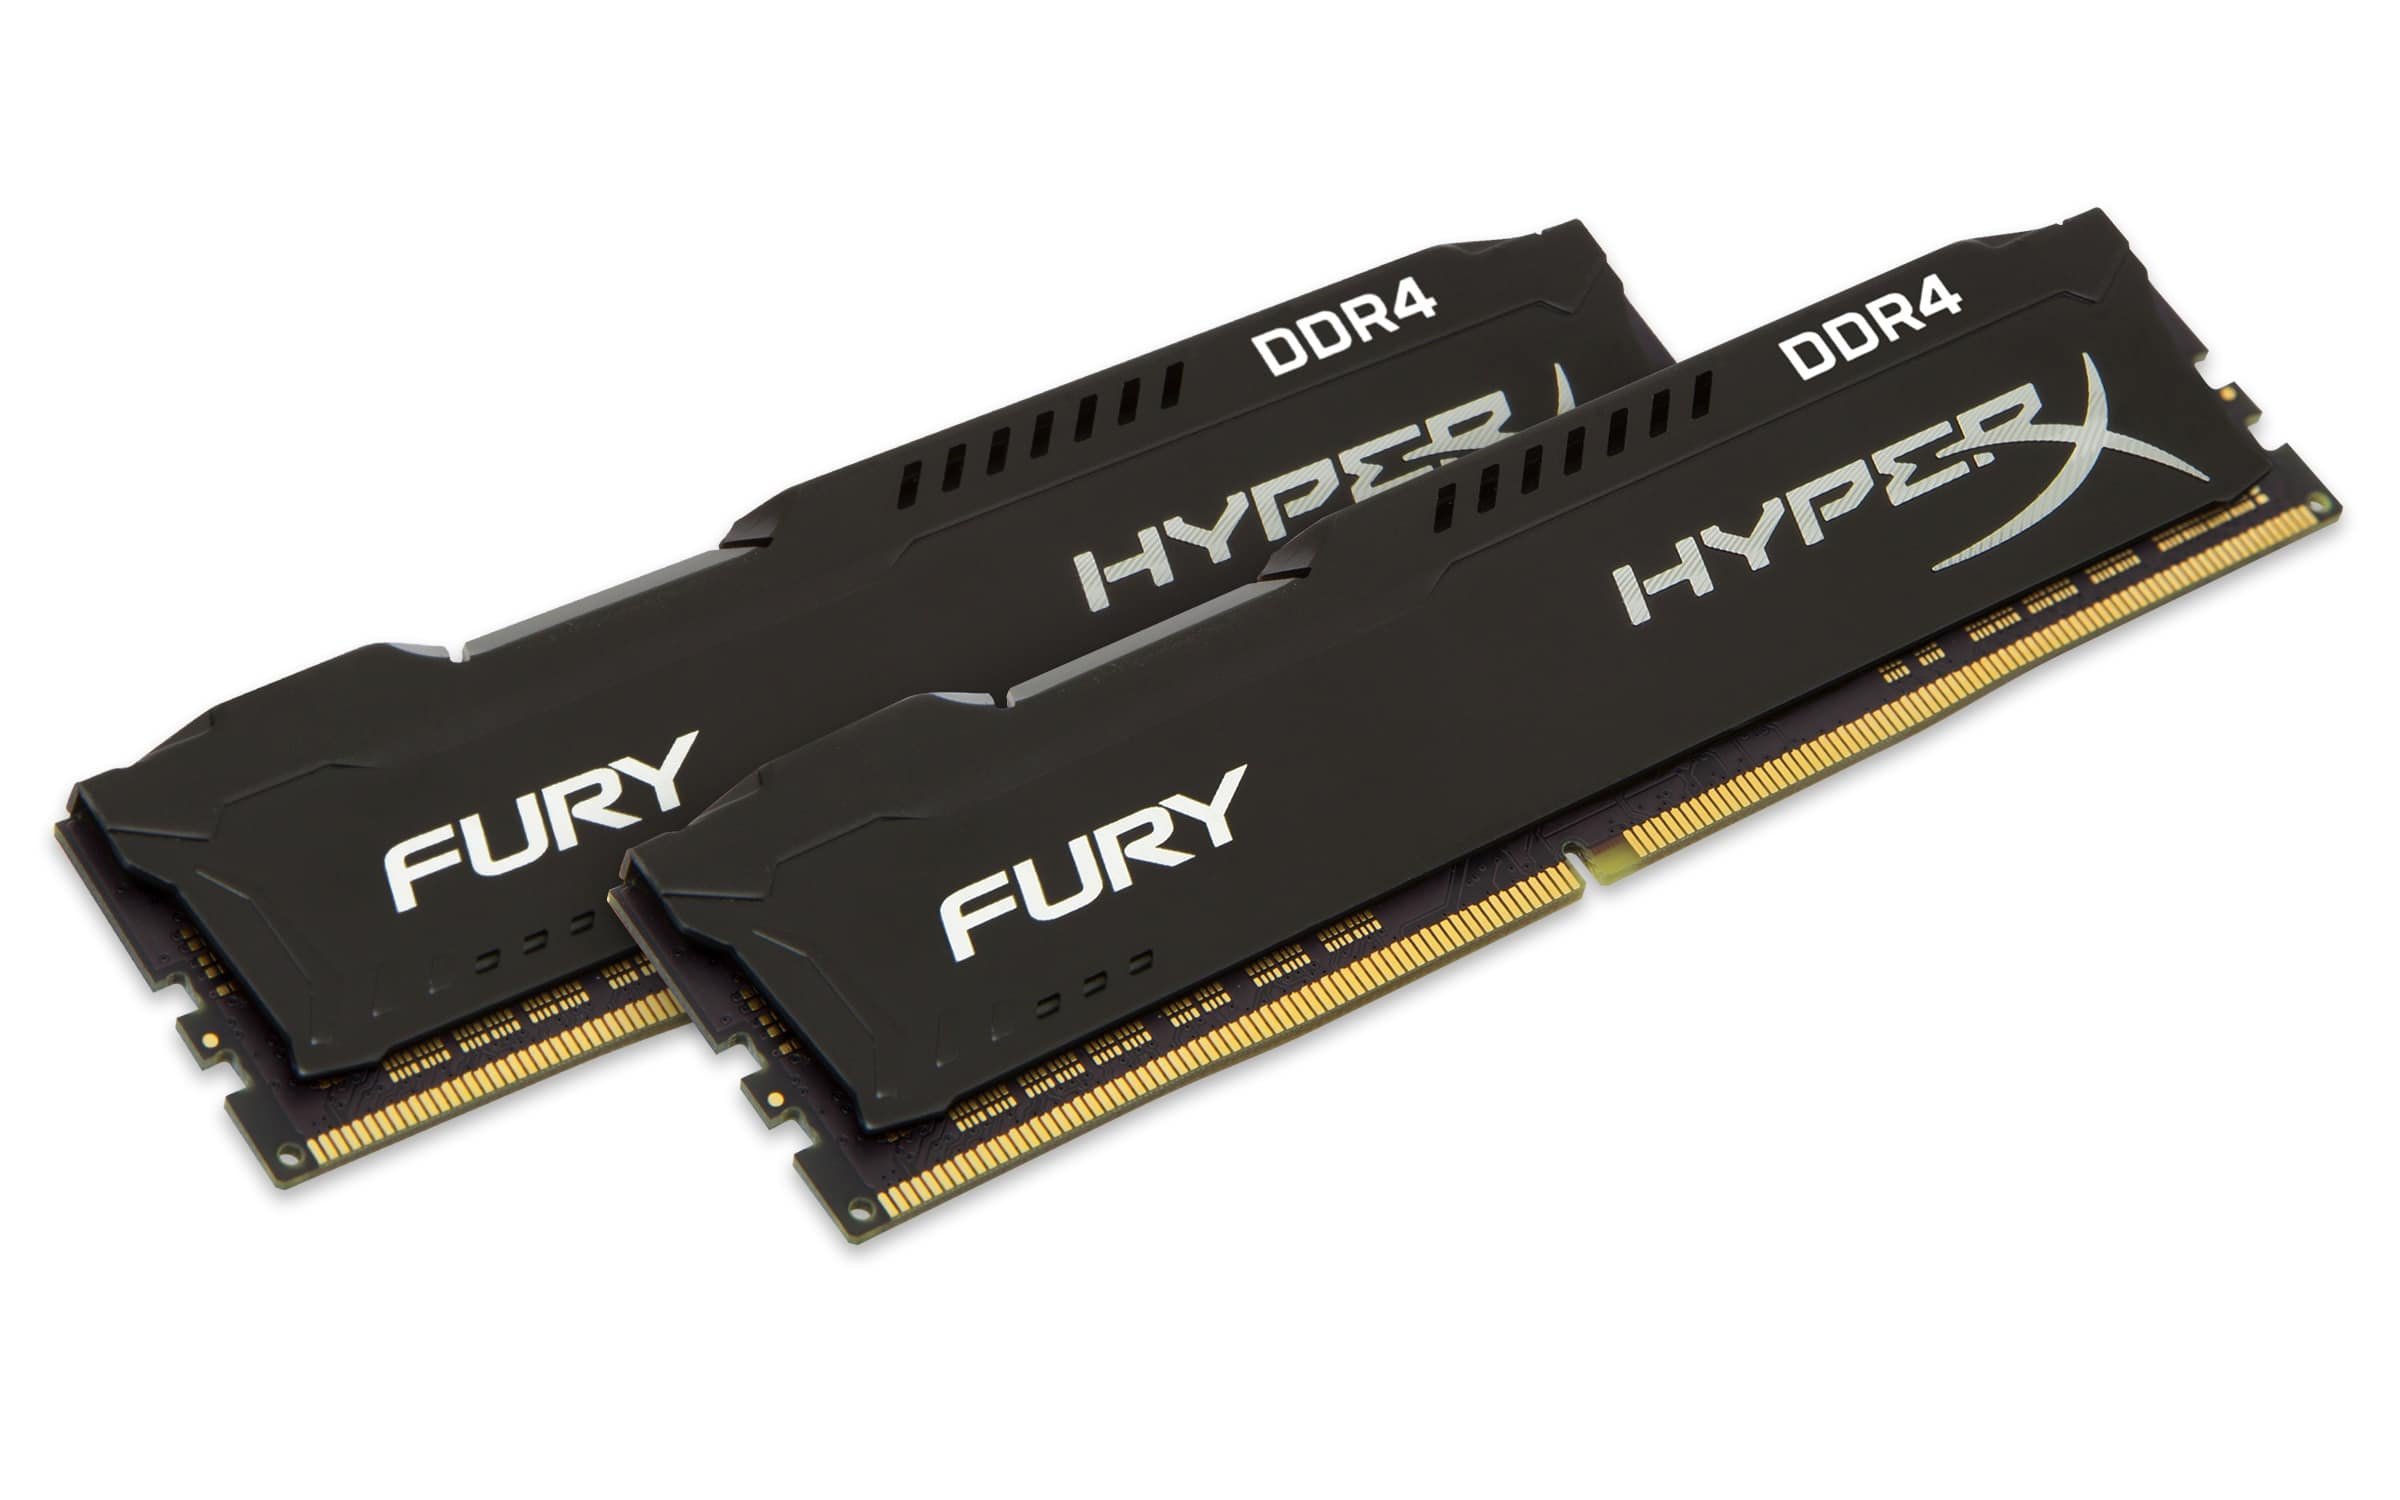 HyperX FURY Memory Black 16GB DDR4 2133MHz Kit für 124,99 Euro